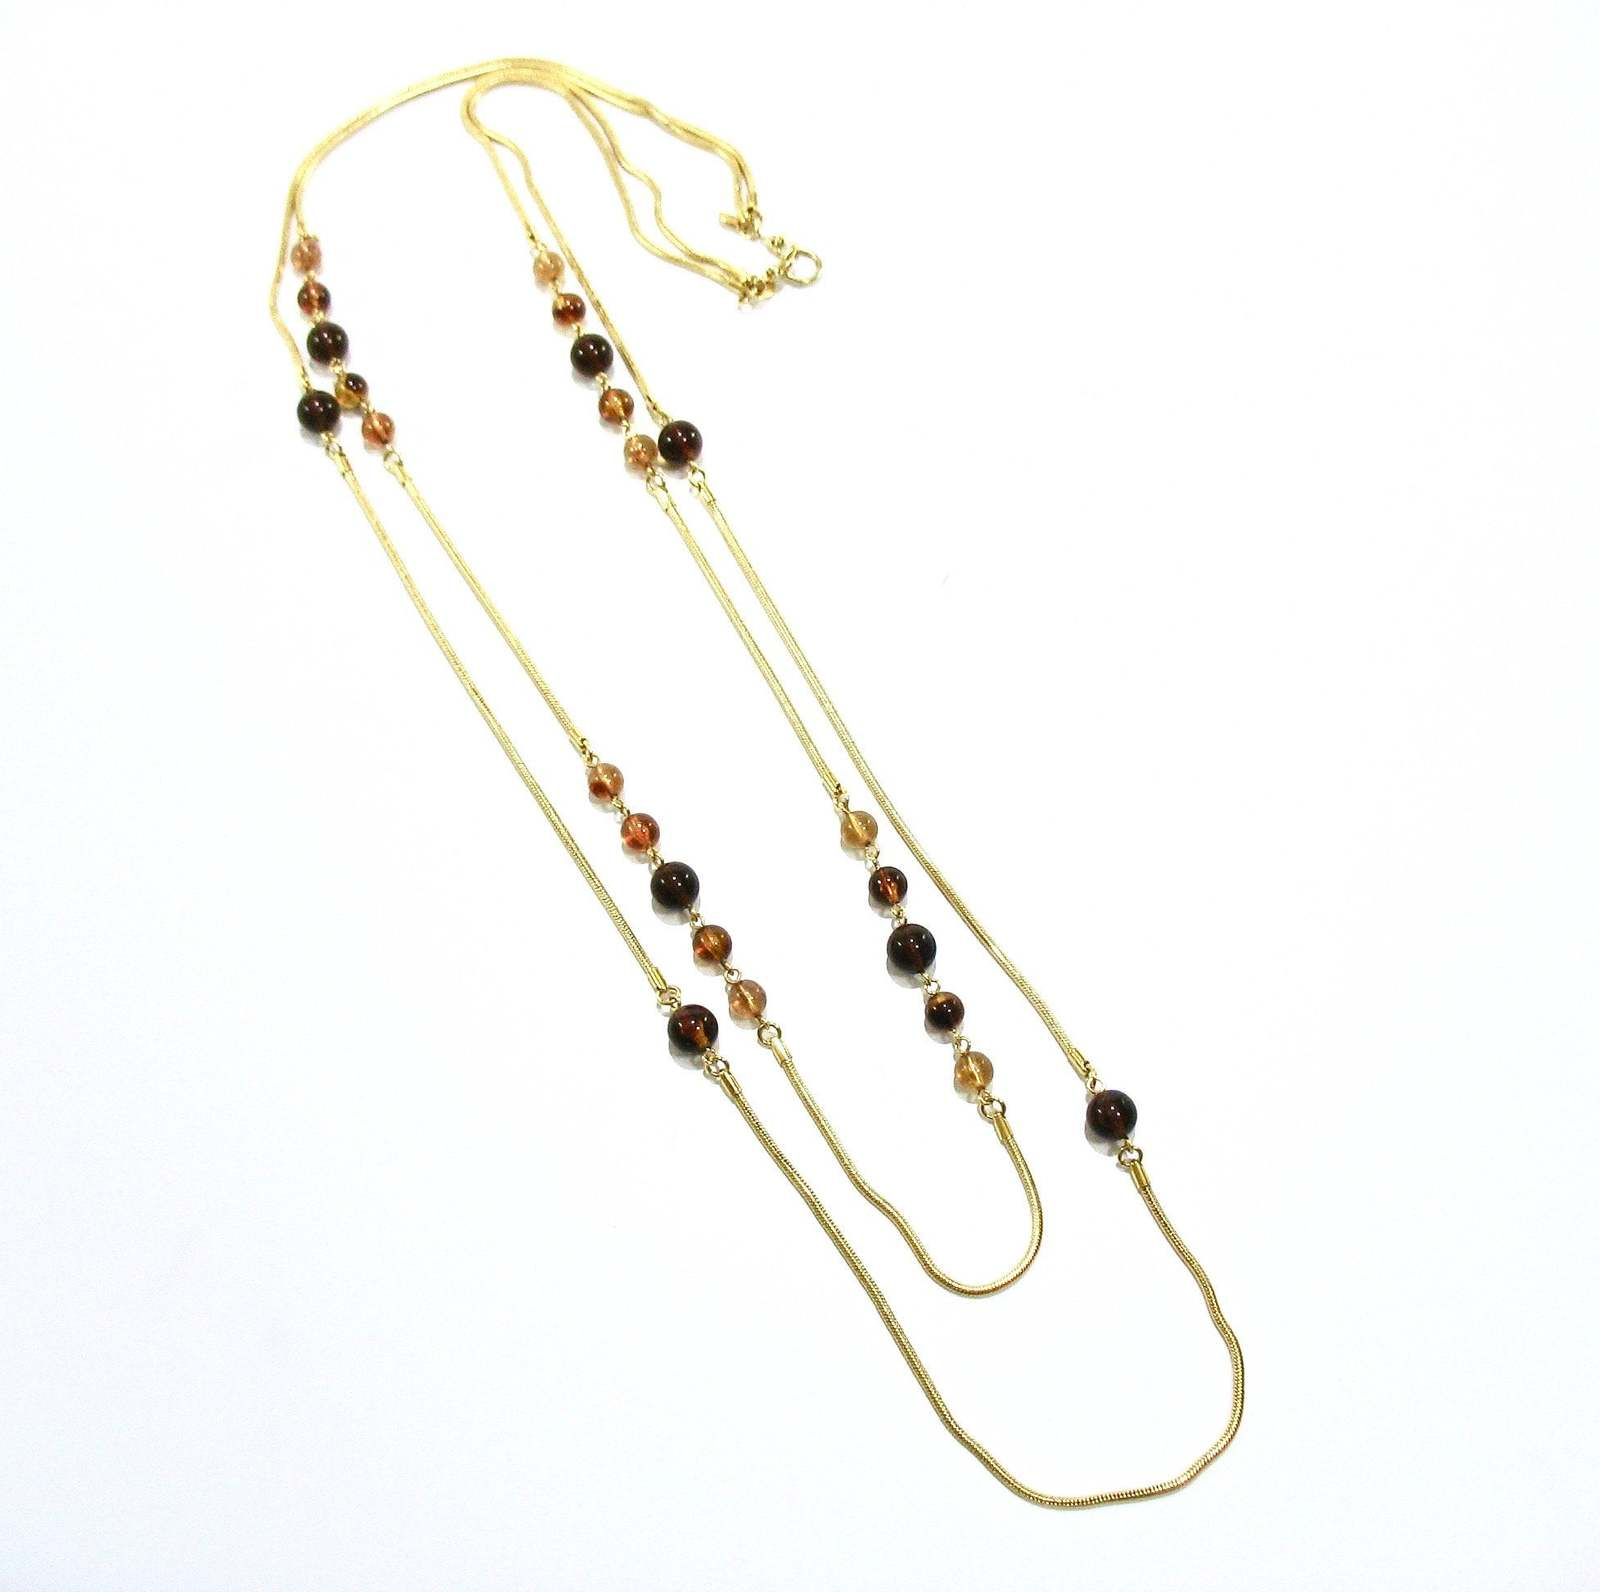 Vintage MONET Double Chain Necklace, Amber Brown Glass Beads, Long Snake Chain,